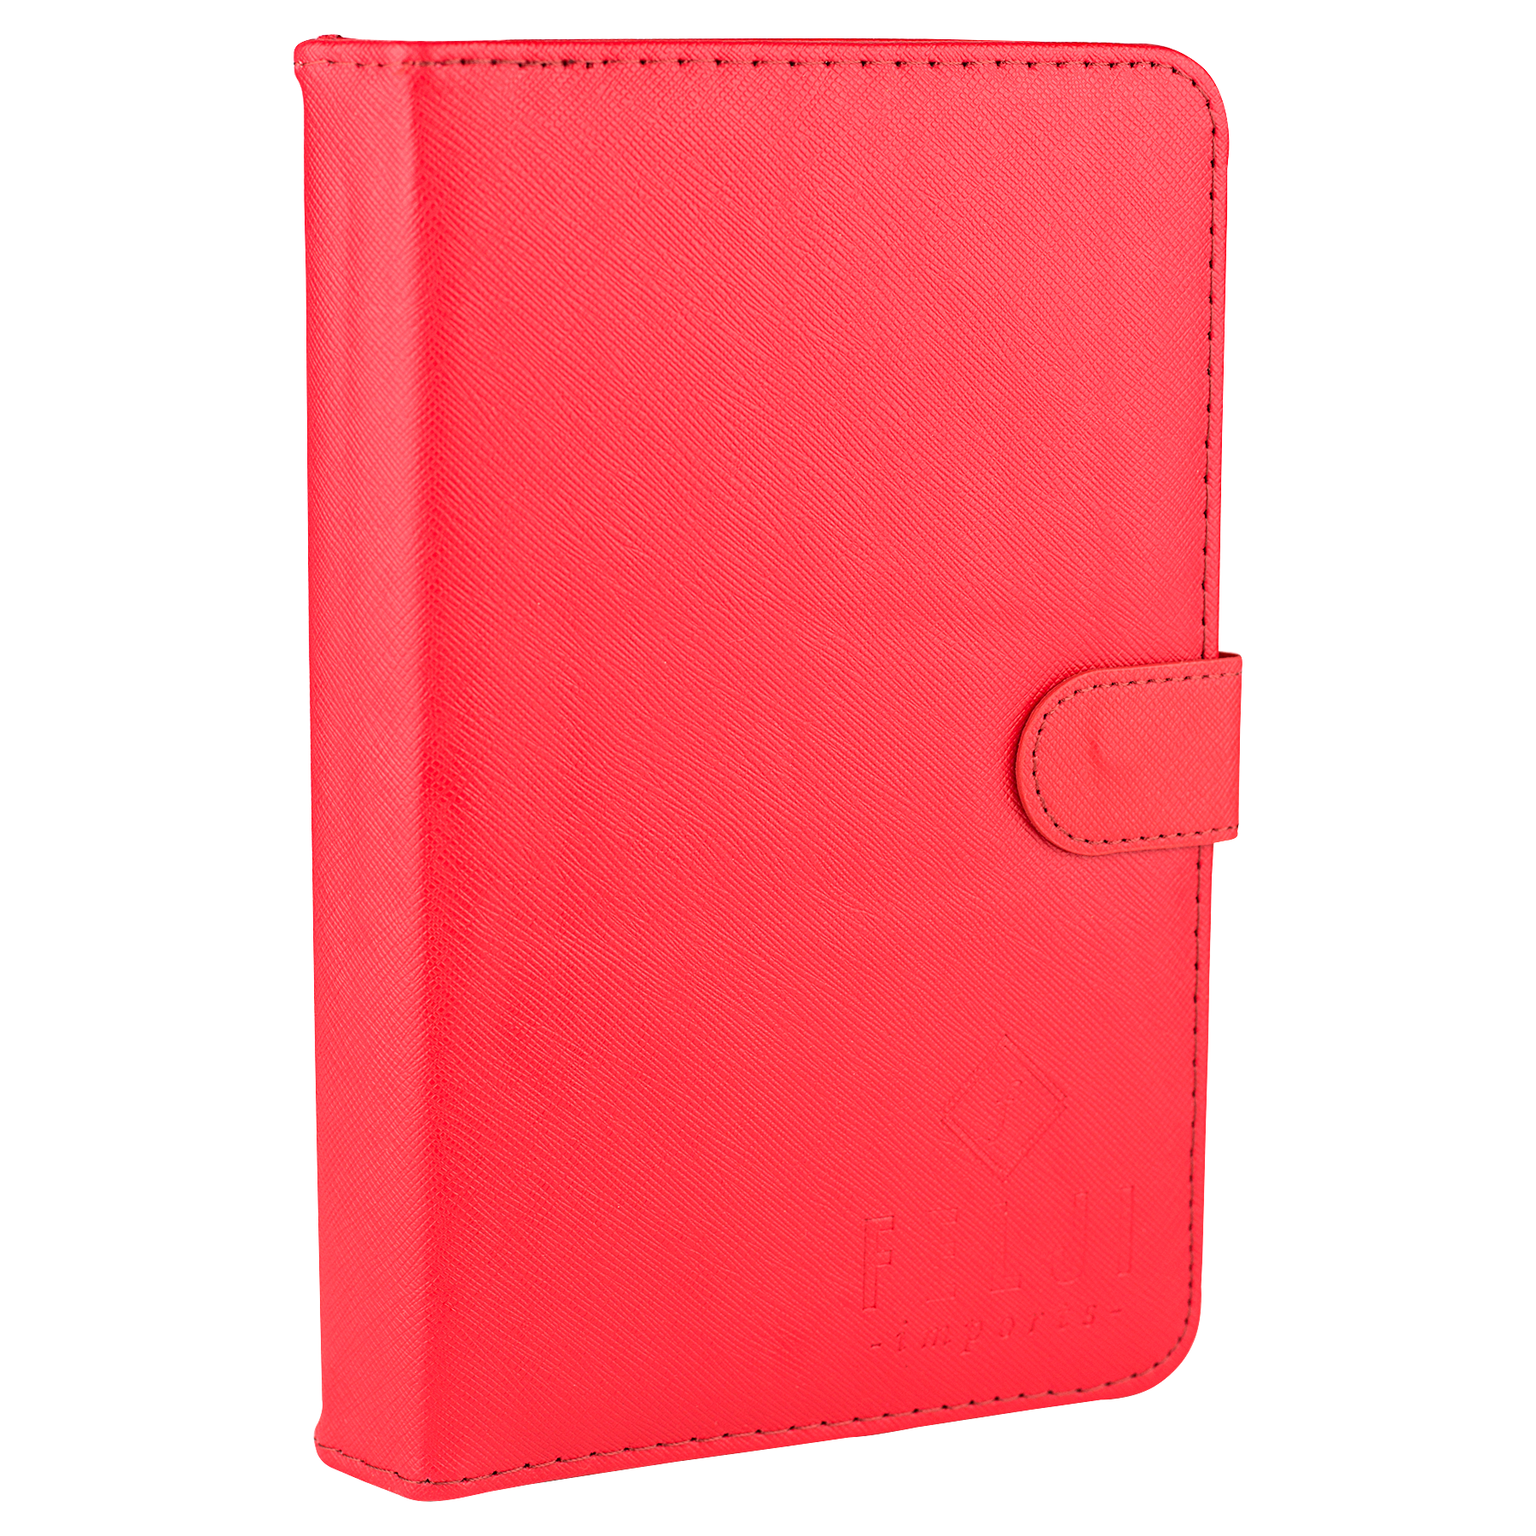 Felji Red Stand Leather Case Cover for Android Tablet 7-Inch Universal w/ USB Keyboard